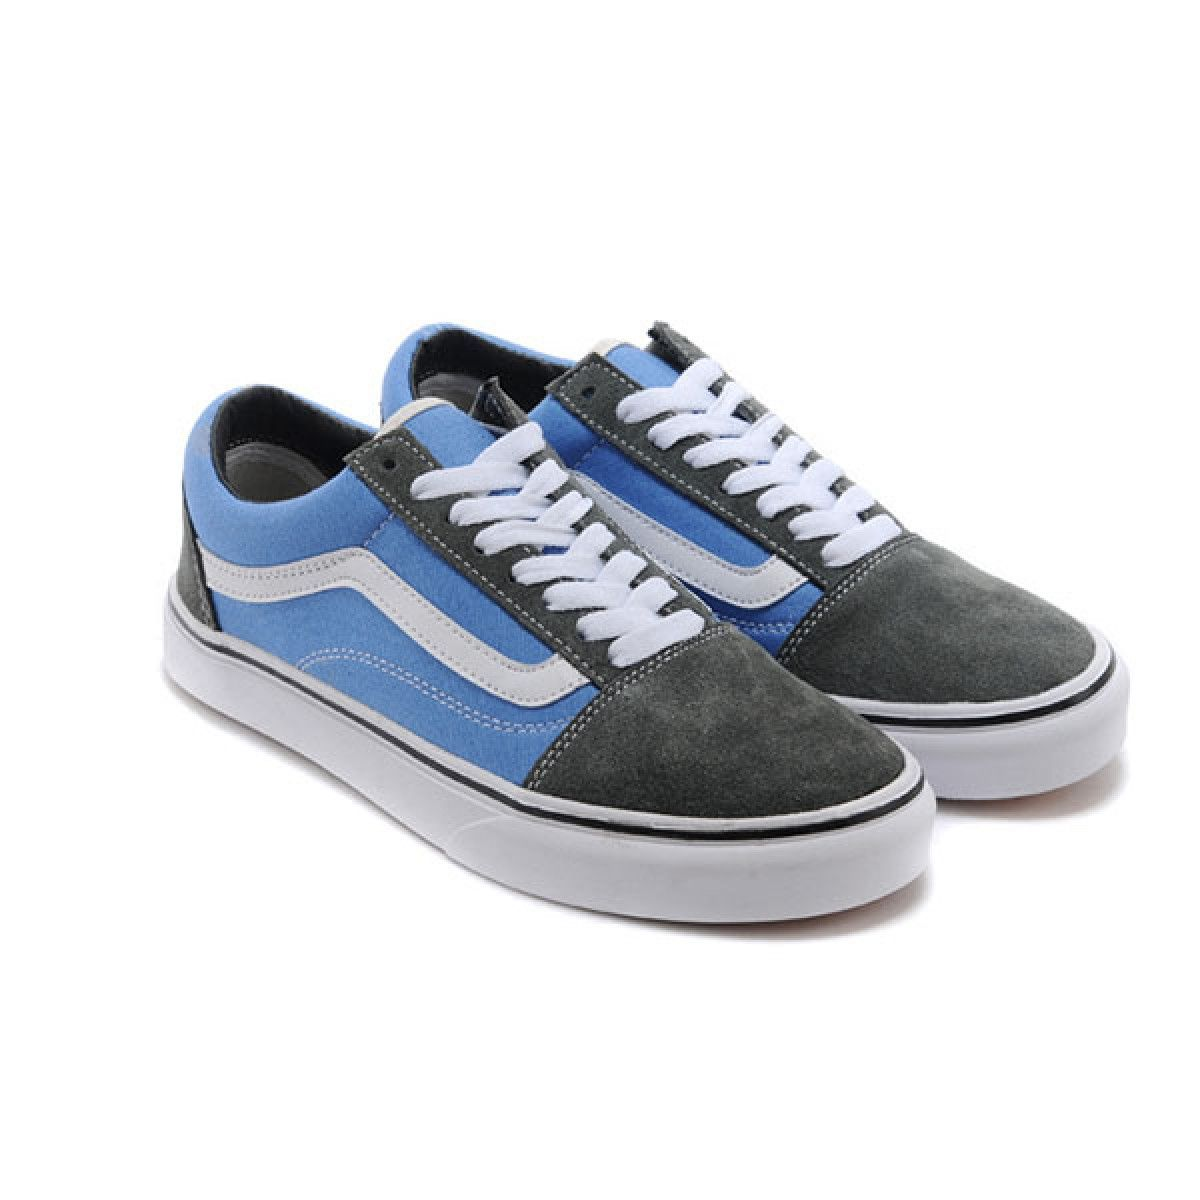 a13b78343ad9 Vans Shoes Grey Blue Two-Tone Old Skool Shoes Unisex Classic Canvas ...